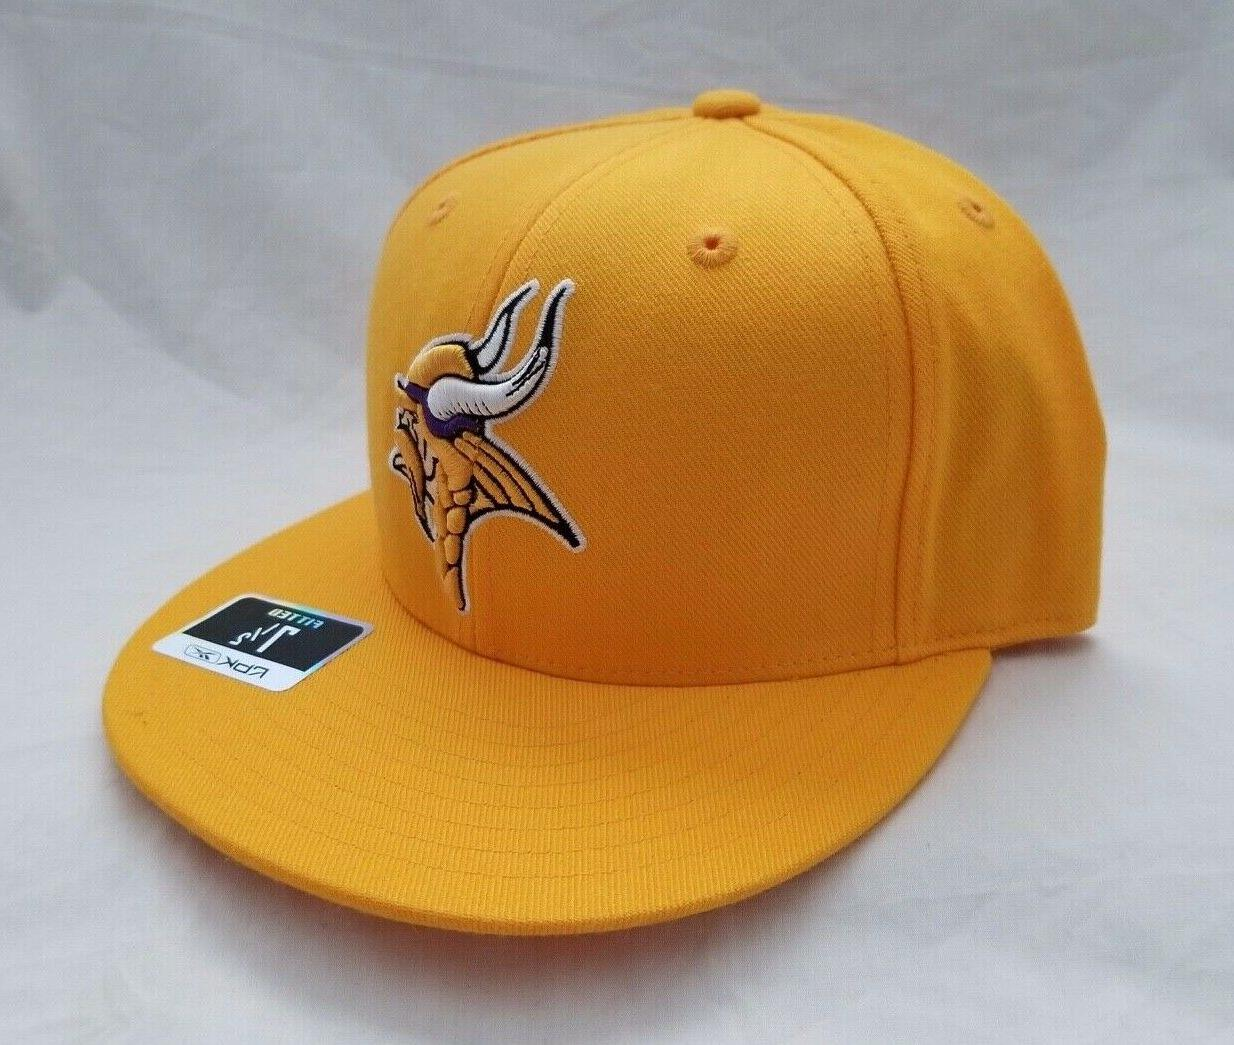 Minnesota Vikings NFL 3D Embroidered Hat Fitted